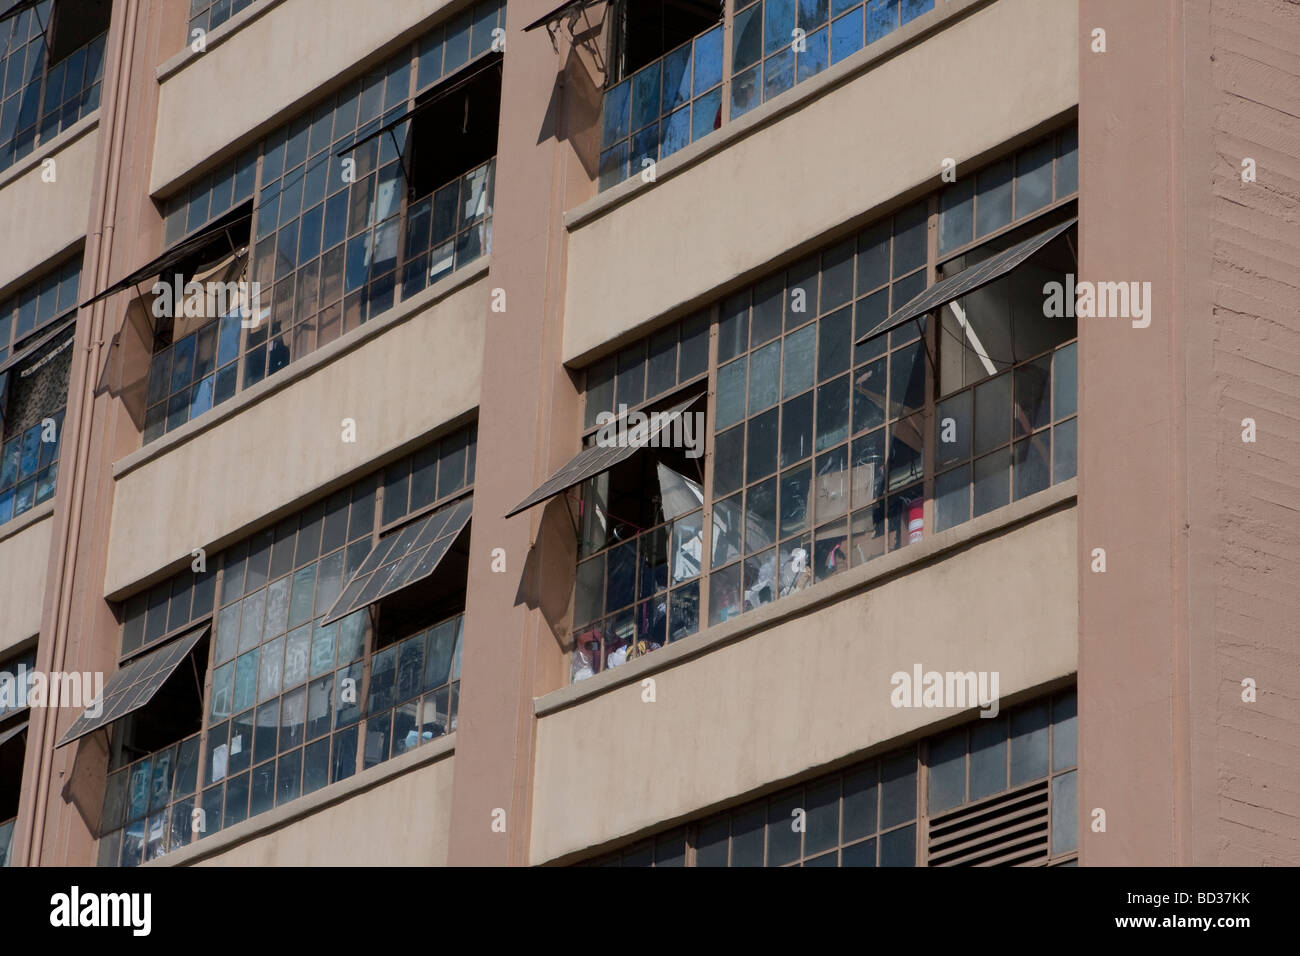 Building, Los Angeles Fashion District - Stock Image